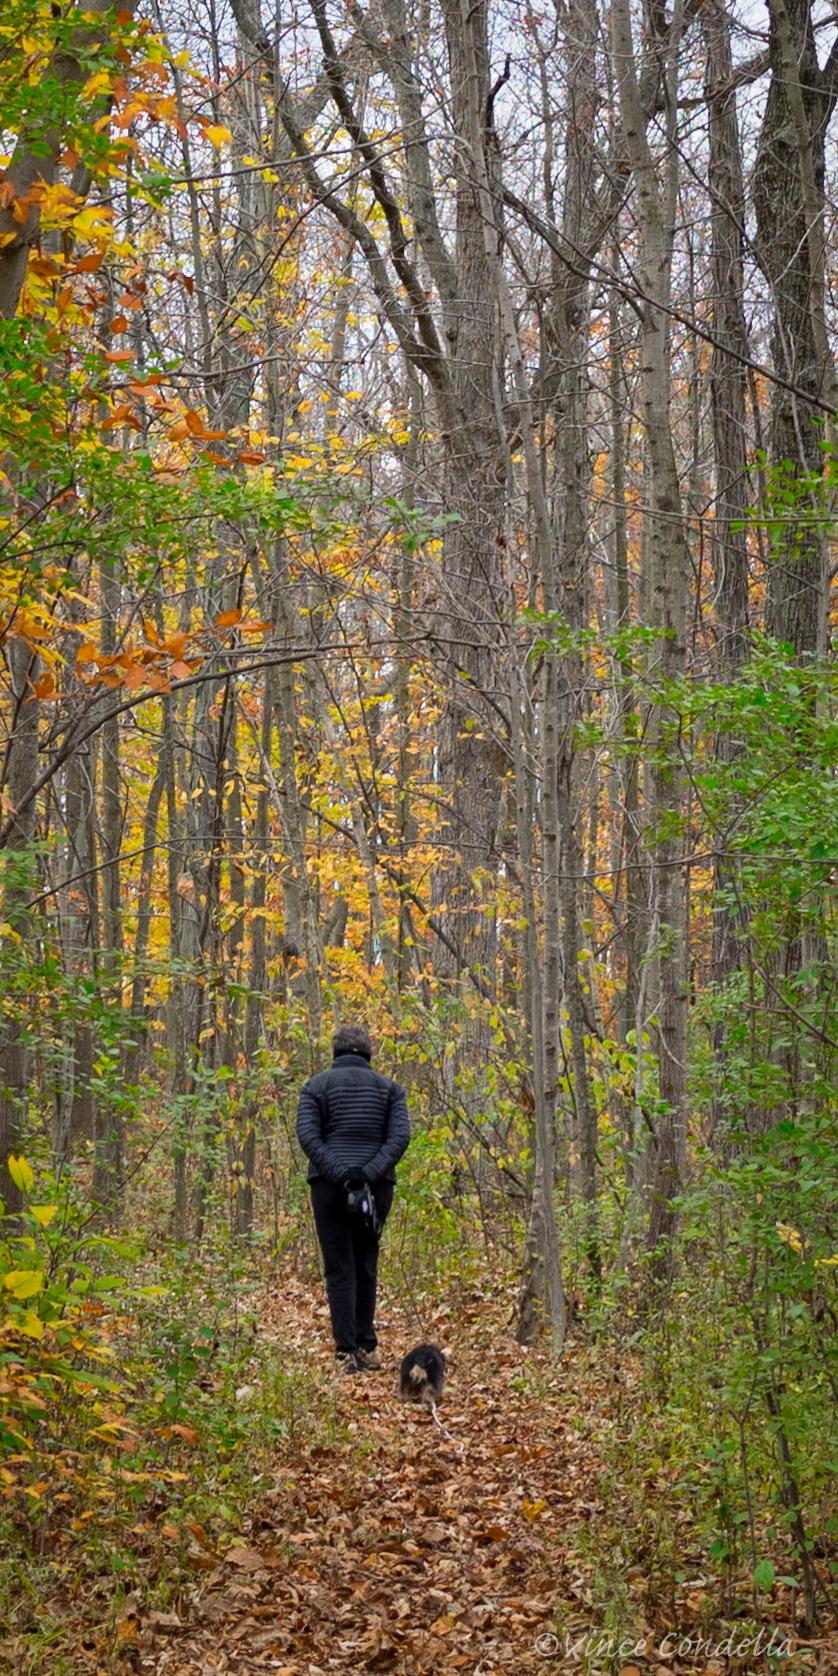 A Walk in the Woods - Vince Condella